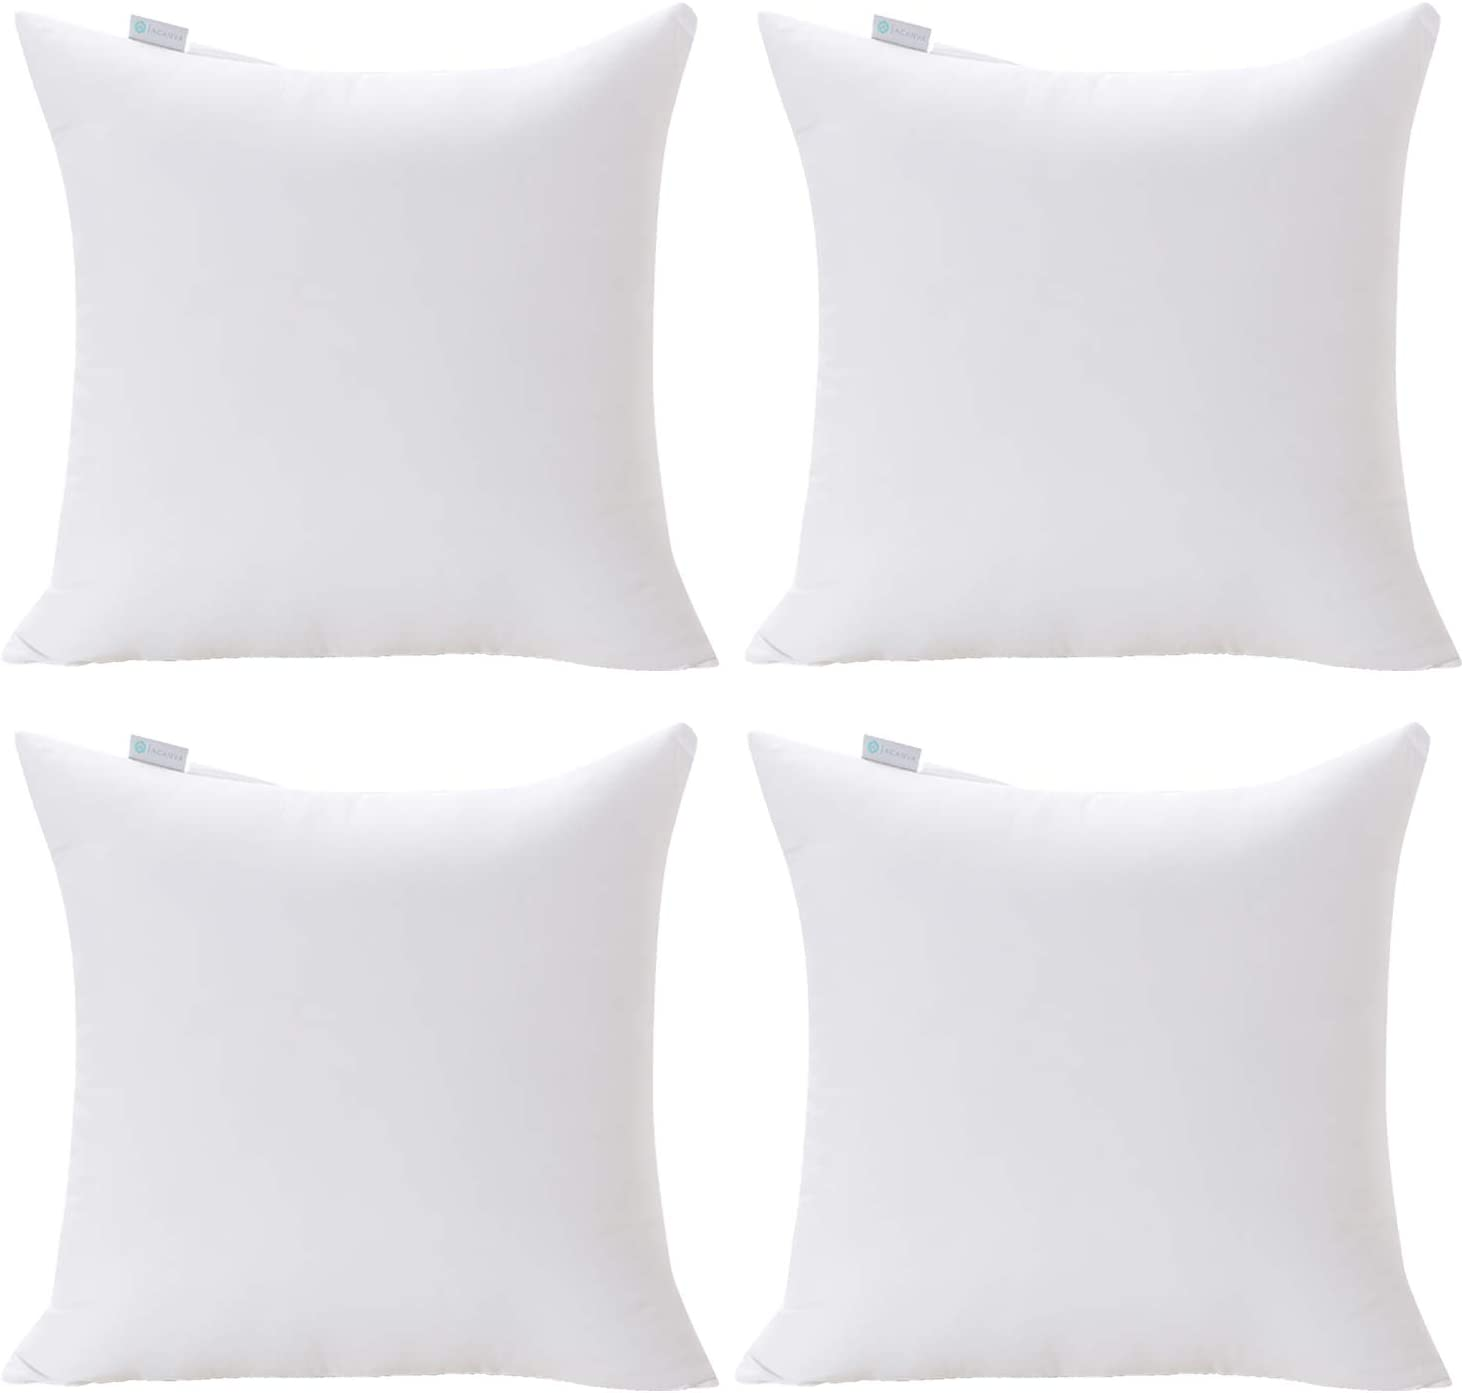 Acanva Decorative Square Throw Pillow Inserts Hypoallergenic Form Stuffer Cushion Sham Filler, 20x20, White 4 Piece